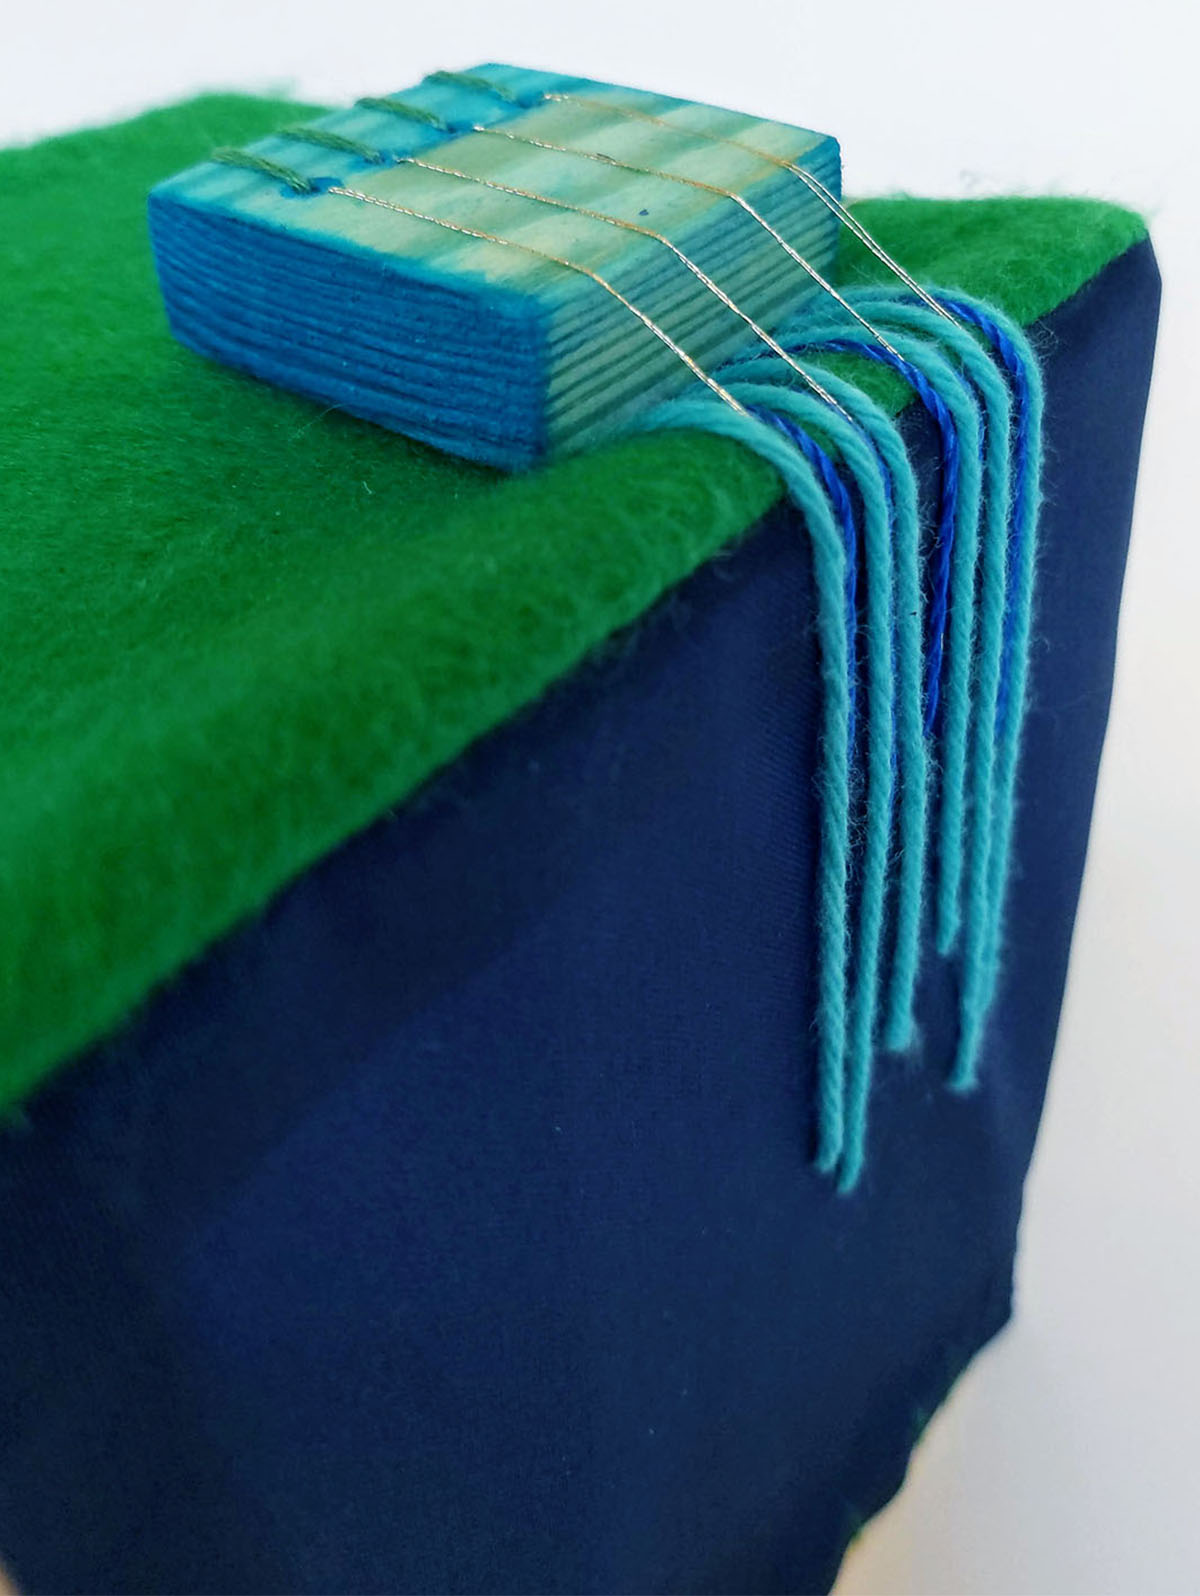 Circuitry Stitch in blue and green